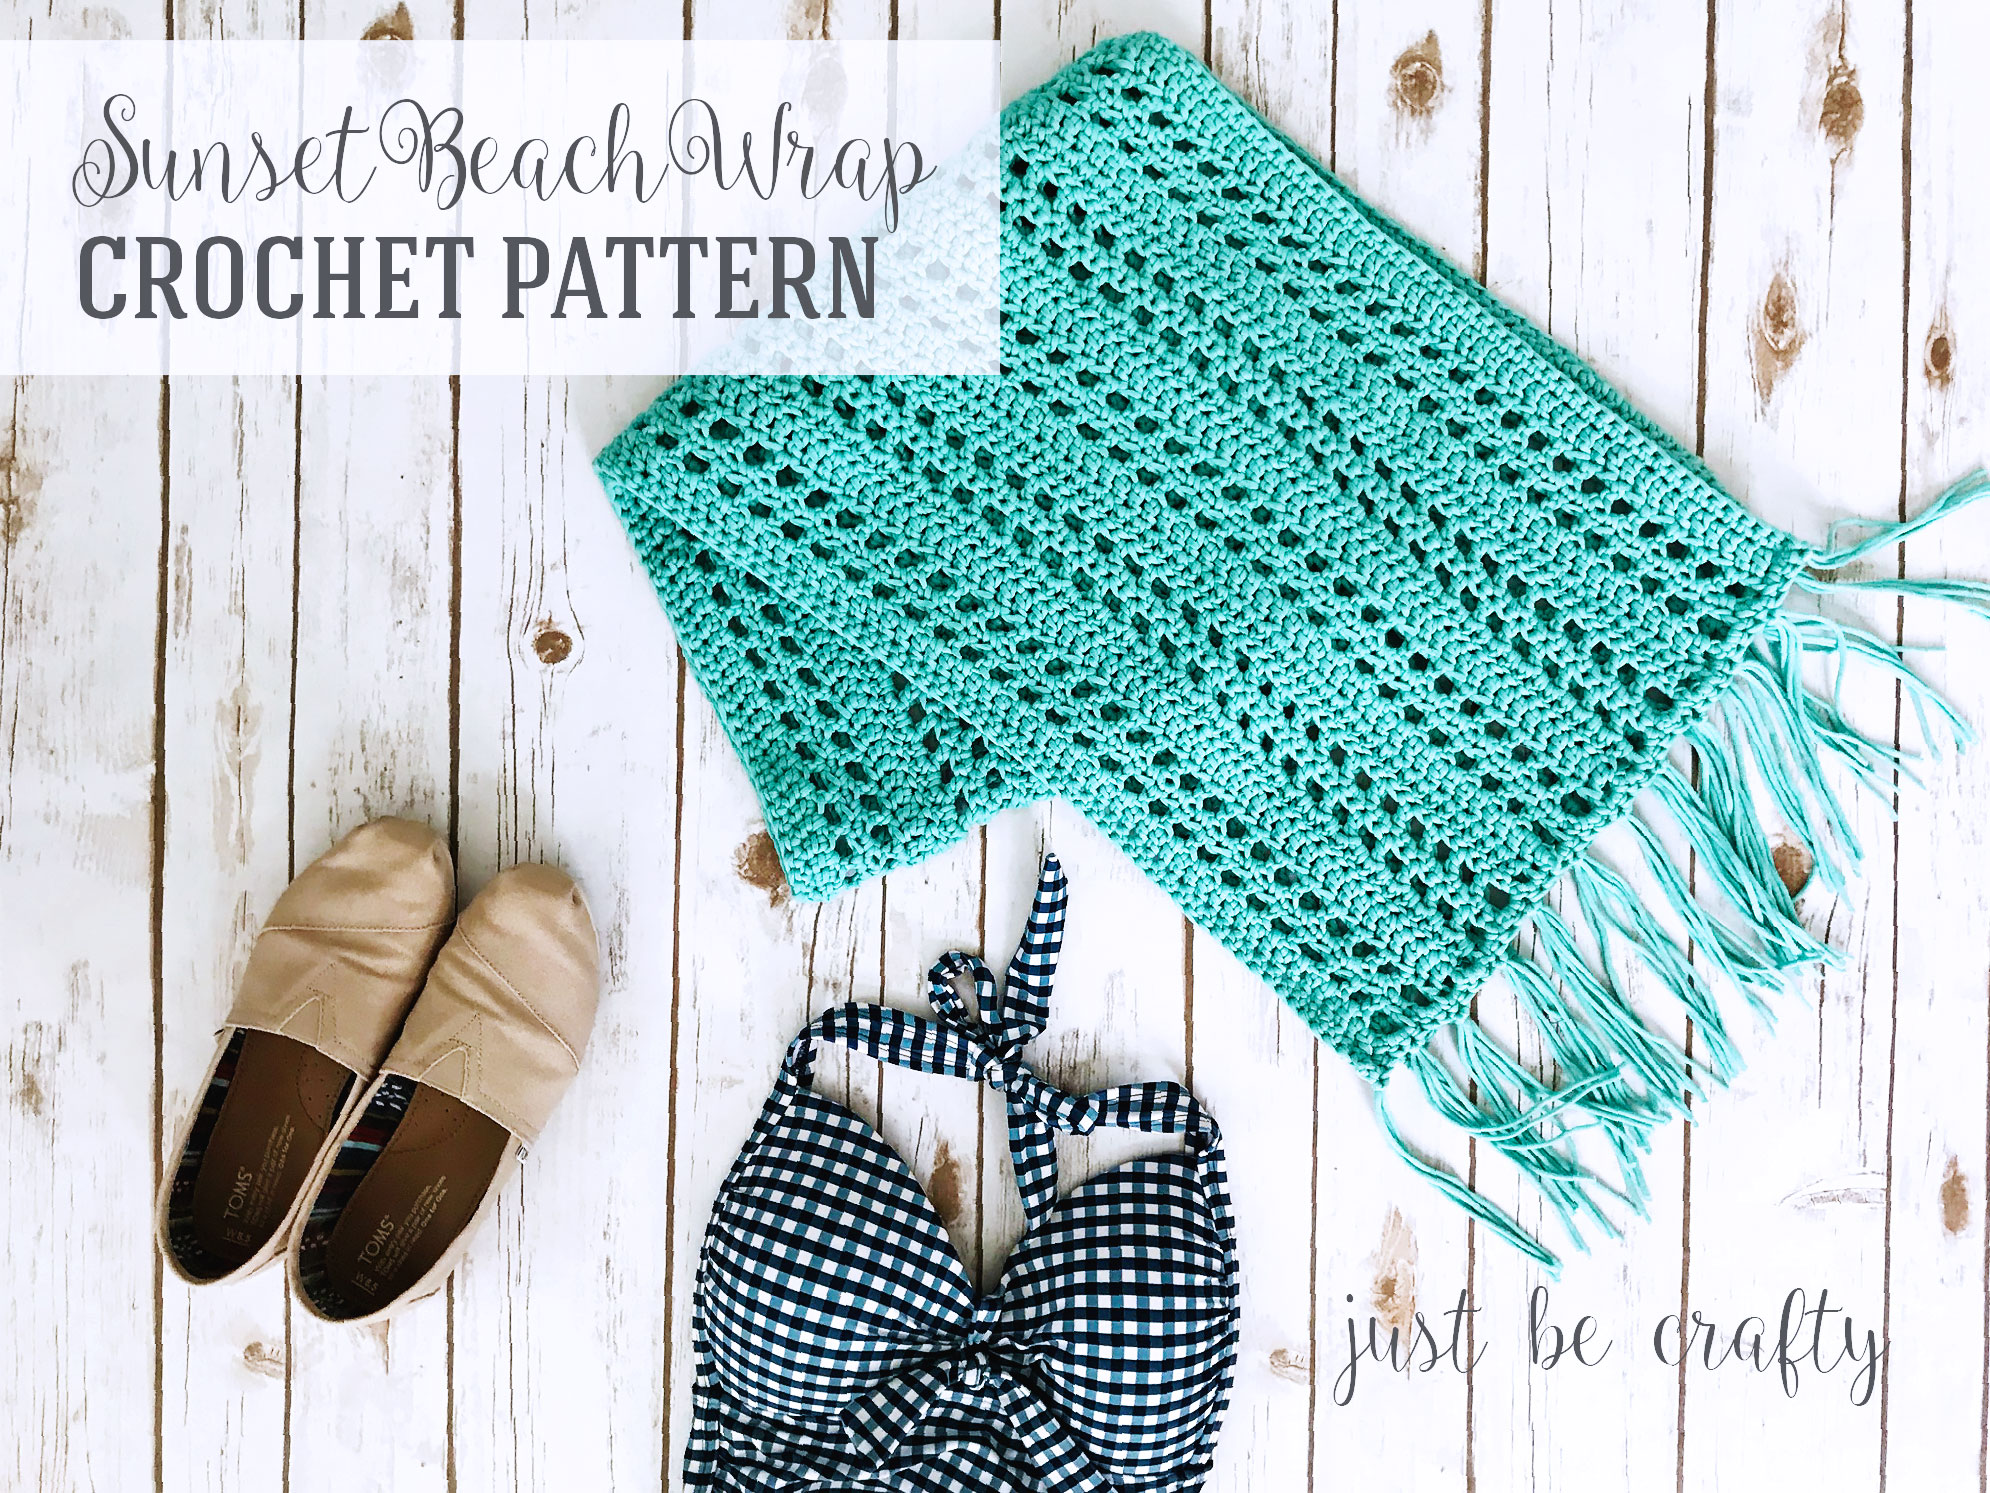 Famous Sunset Beach Wrap Crochet Pattern - Free Pattern by Just Be Crafty MF23